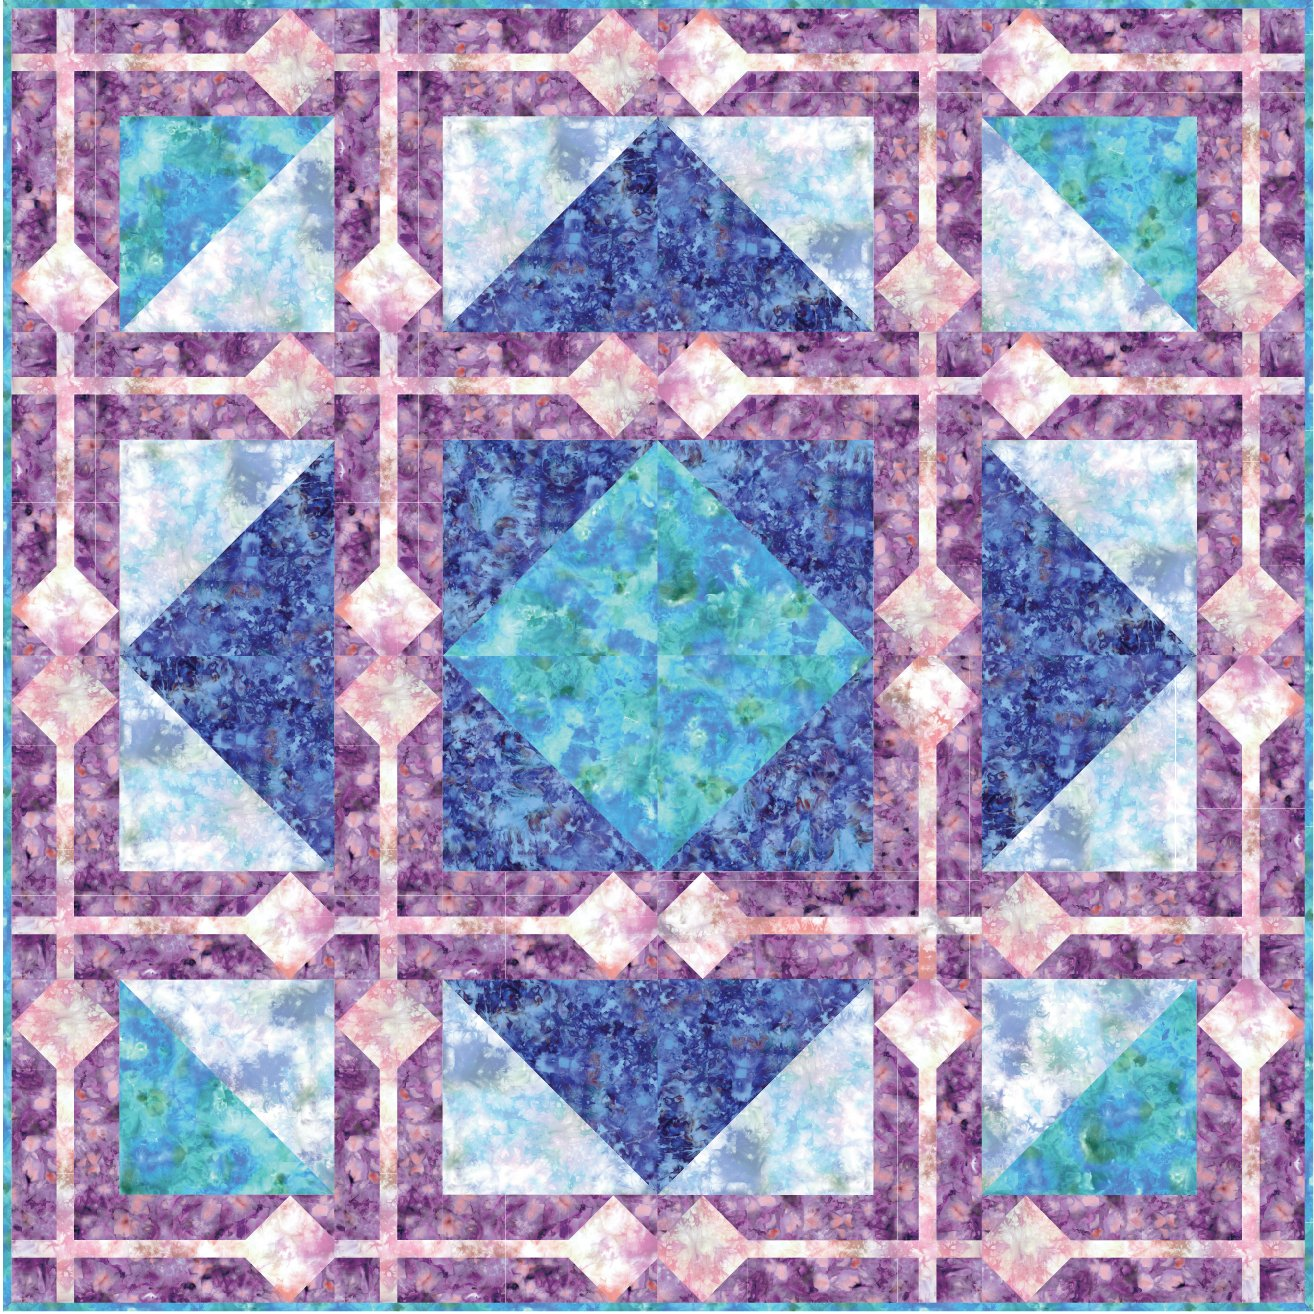 EESC-KITMASFIR - FIRE & ICE QUILT KIT 70 x 70 - ARRIVING IN OCTOBER 2021